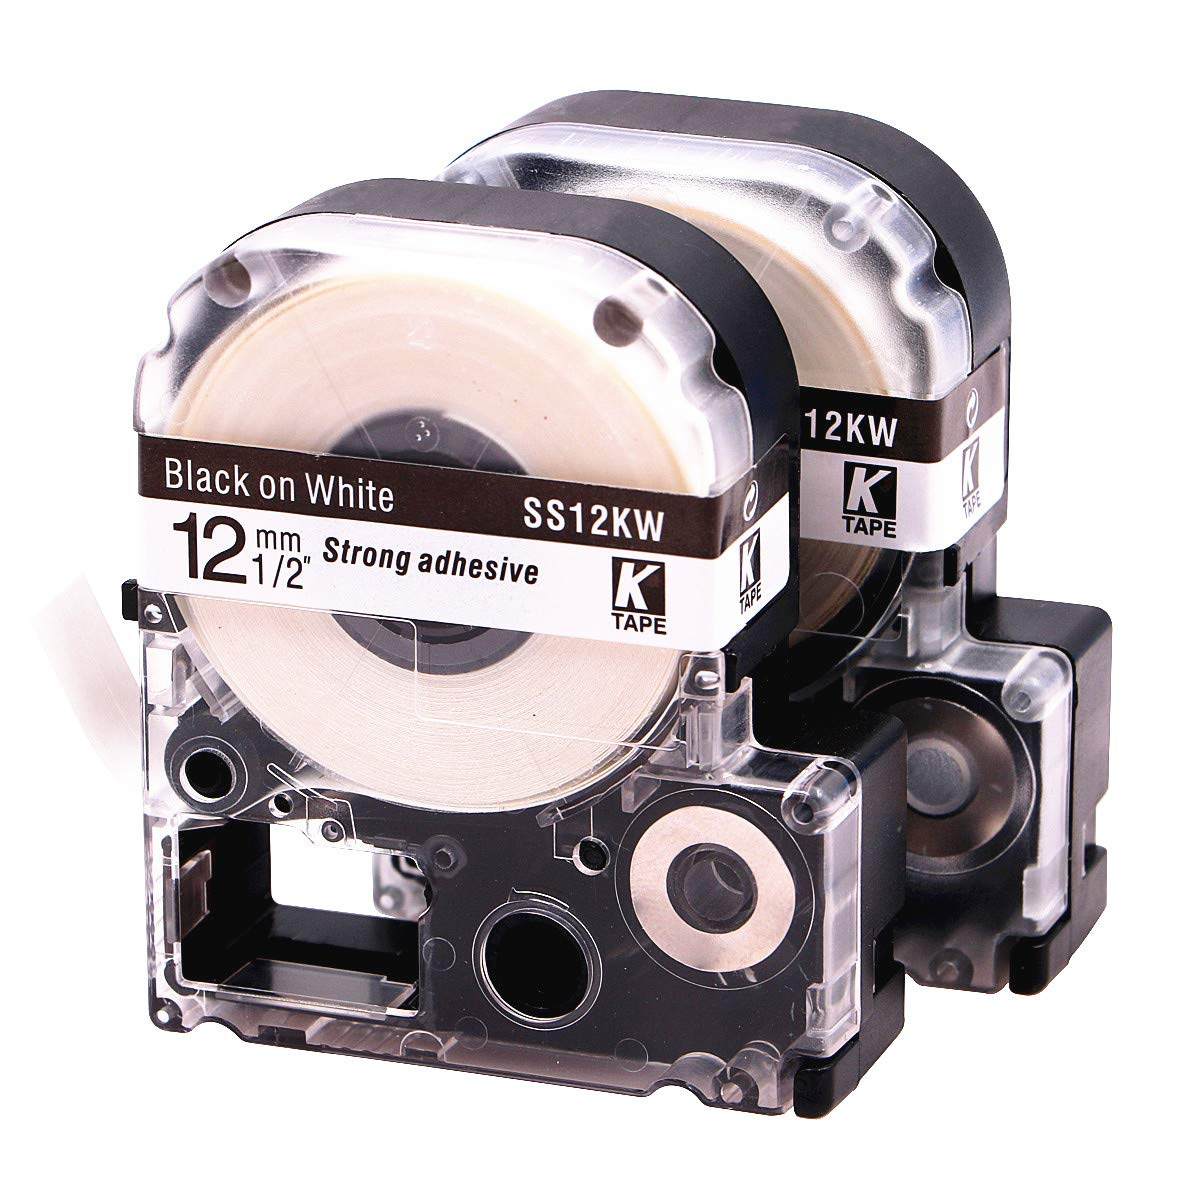 LK LC Label Tape Cartridge Compatible Epson Labelworks LW-300 LW-400 LW-500 LW-600p label printers, Black On White LC-4WBN9 (LK-4WBN), 1/2'' (12mm) x 30ft (9m) - 2 Pack